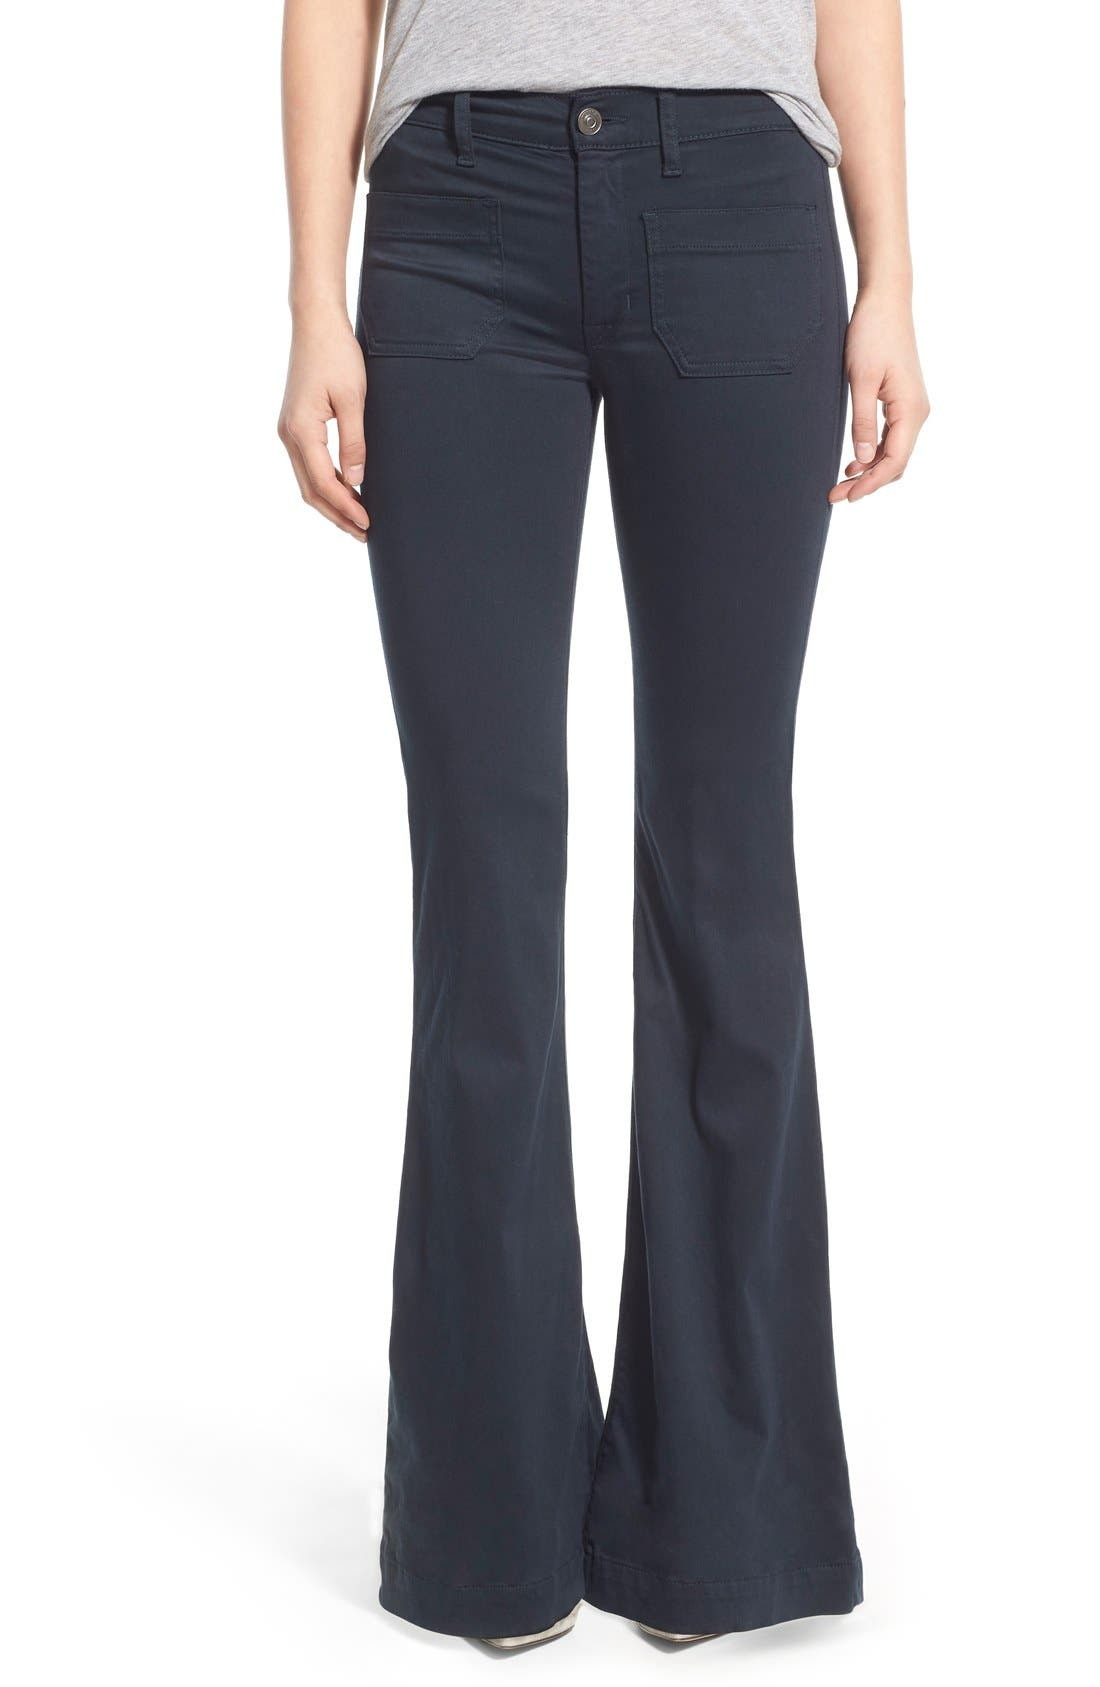 'Taylor' Flare Jeans,                             Main thumbnail 1, color,                             Midnight